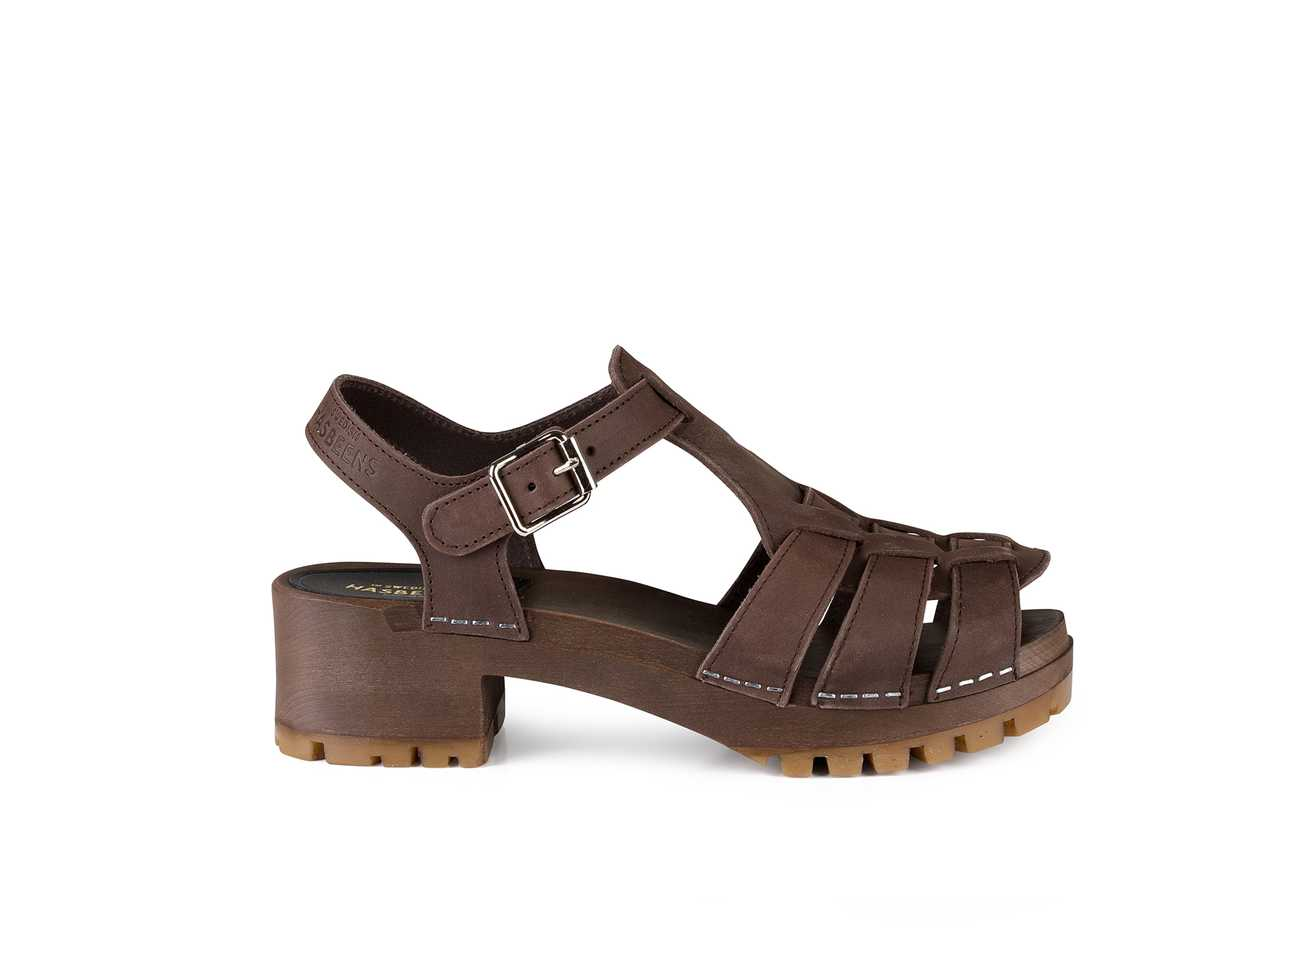 Grunge Sandal Chocolate Brown Nubuck / Chocolate Brown Sole